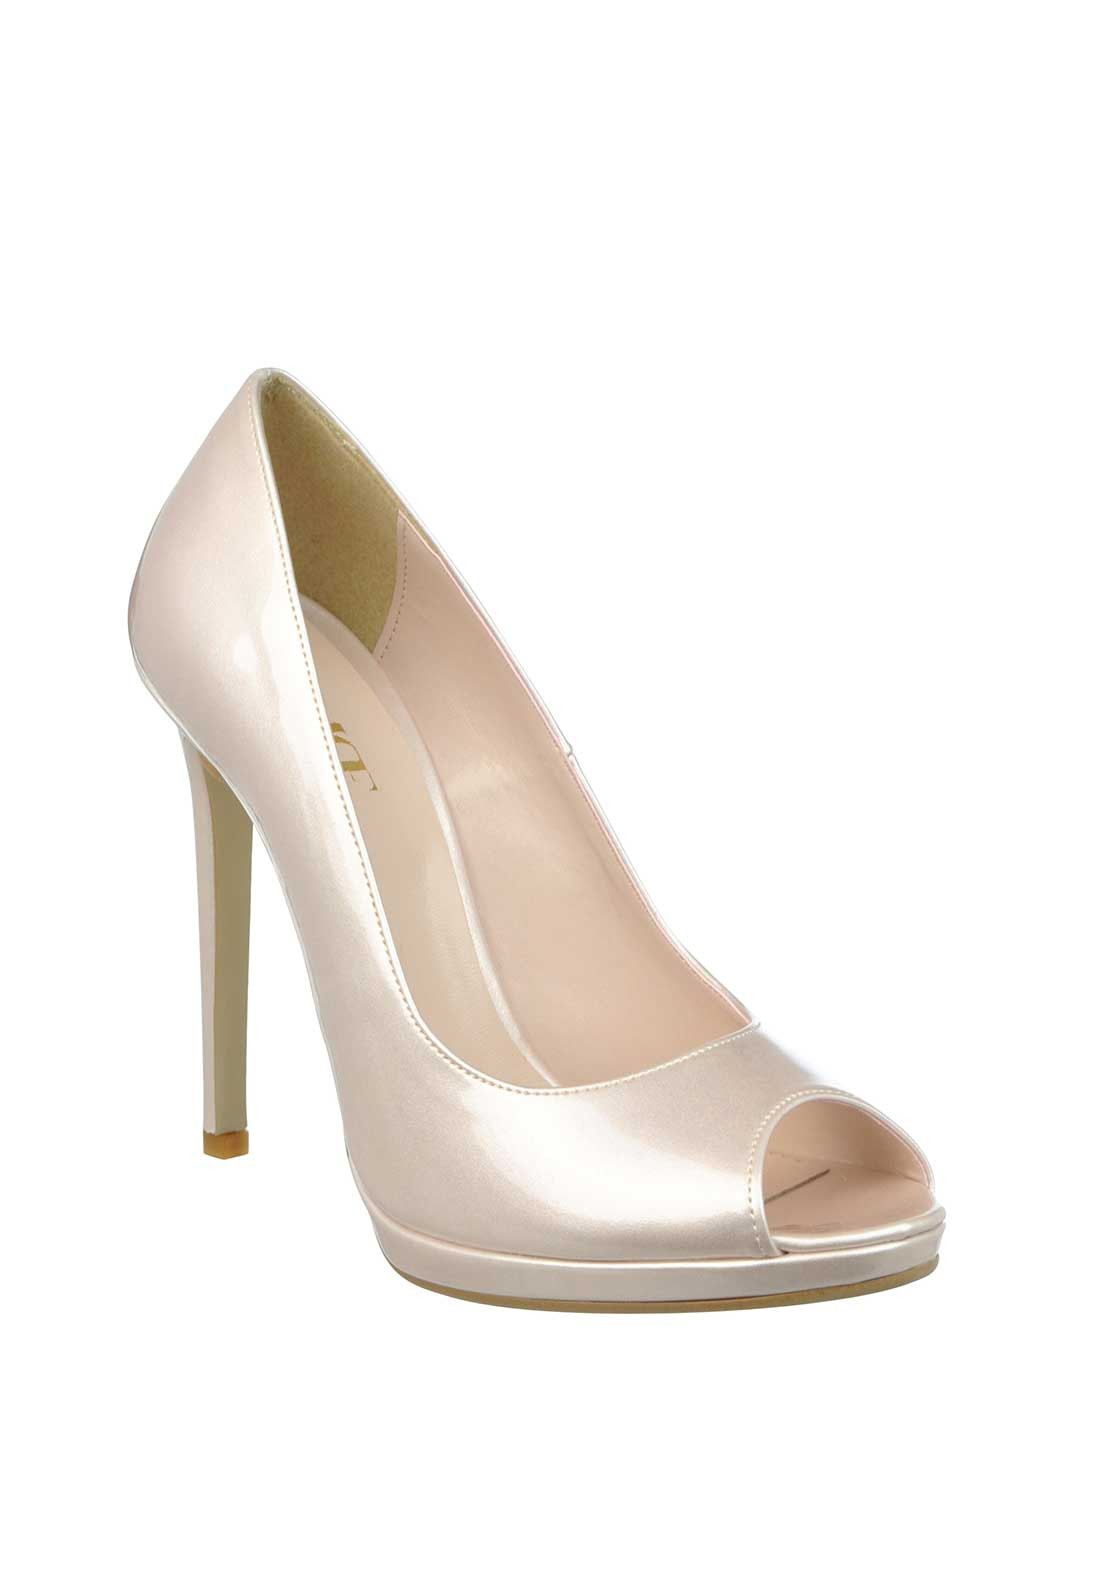 McElhinney's Patent Peep Toe Heeled Shoes, Pink Champagne